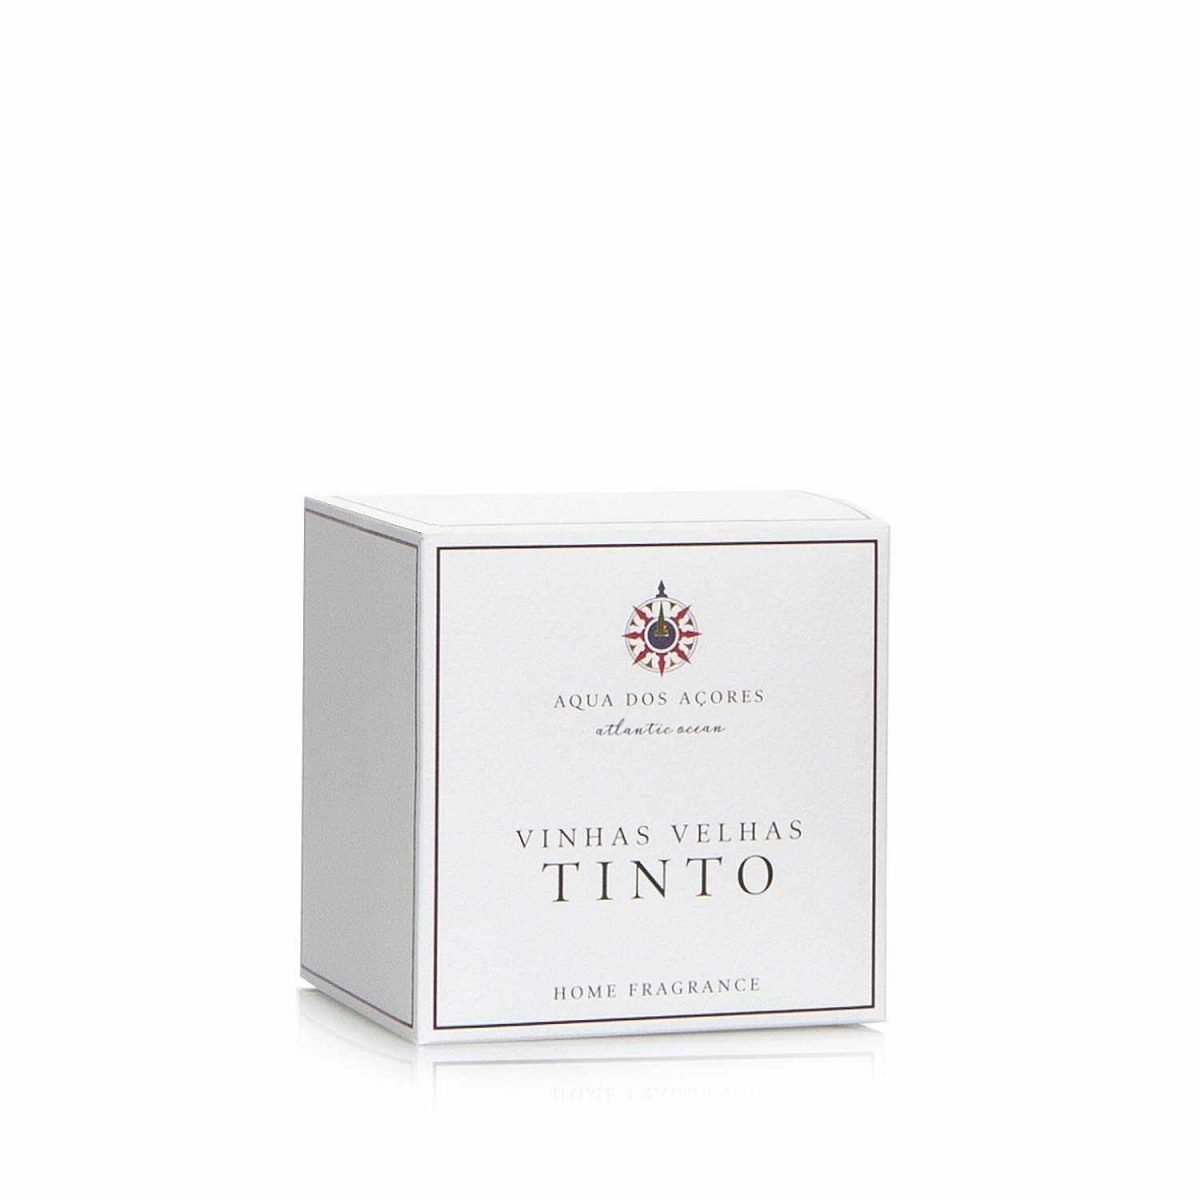 Tinto Home fragrance box by Aqua dos Azores